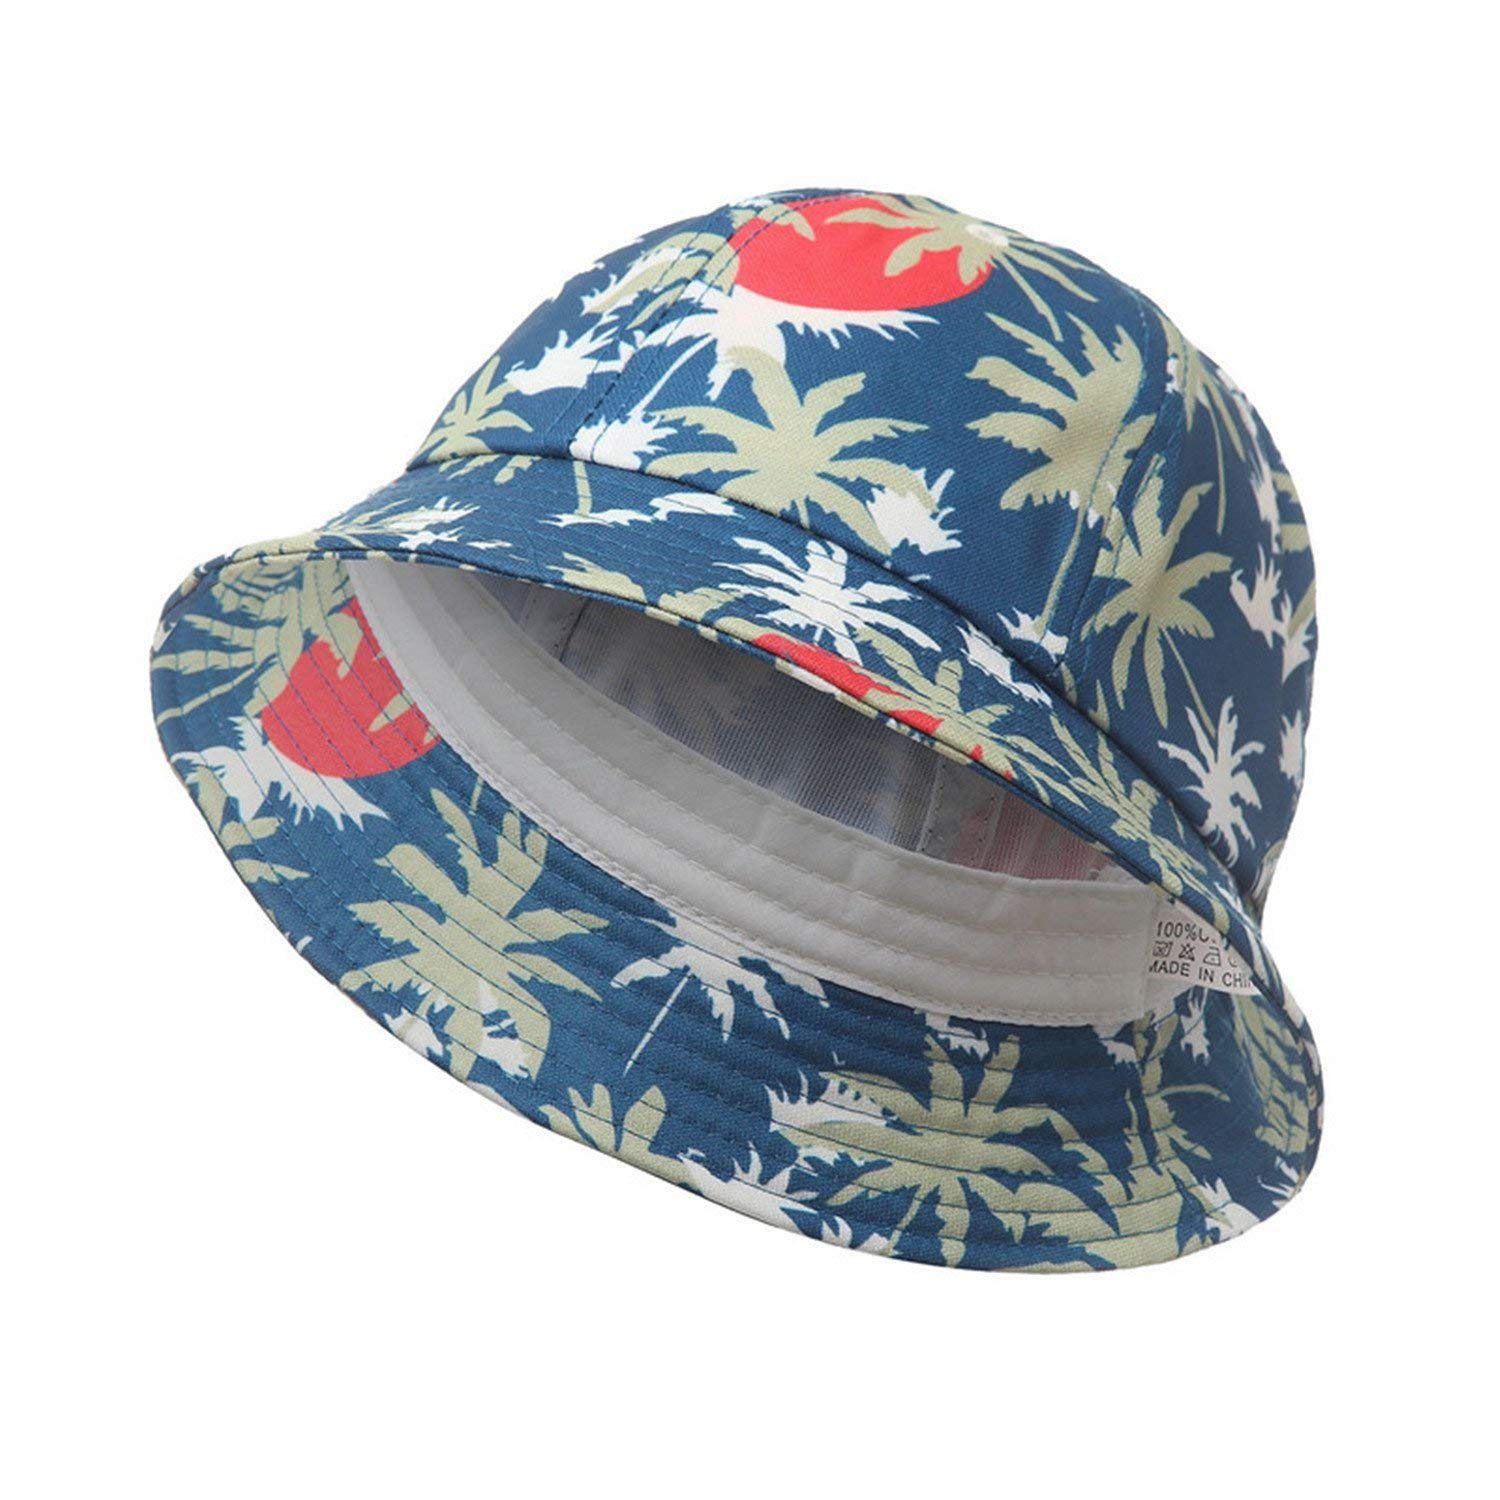 add096bda9174 Get Quotations · Novel Tree Print Cotton Bucket Hat Outdoor Sun Beach Cap  Fisherman Panama Sports Hats for Women